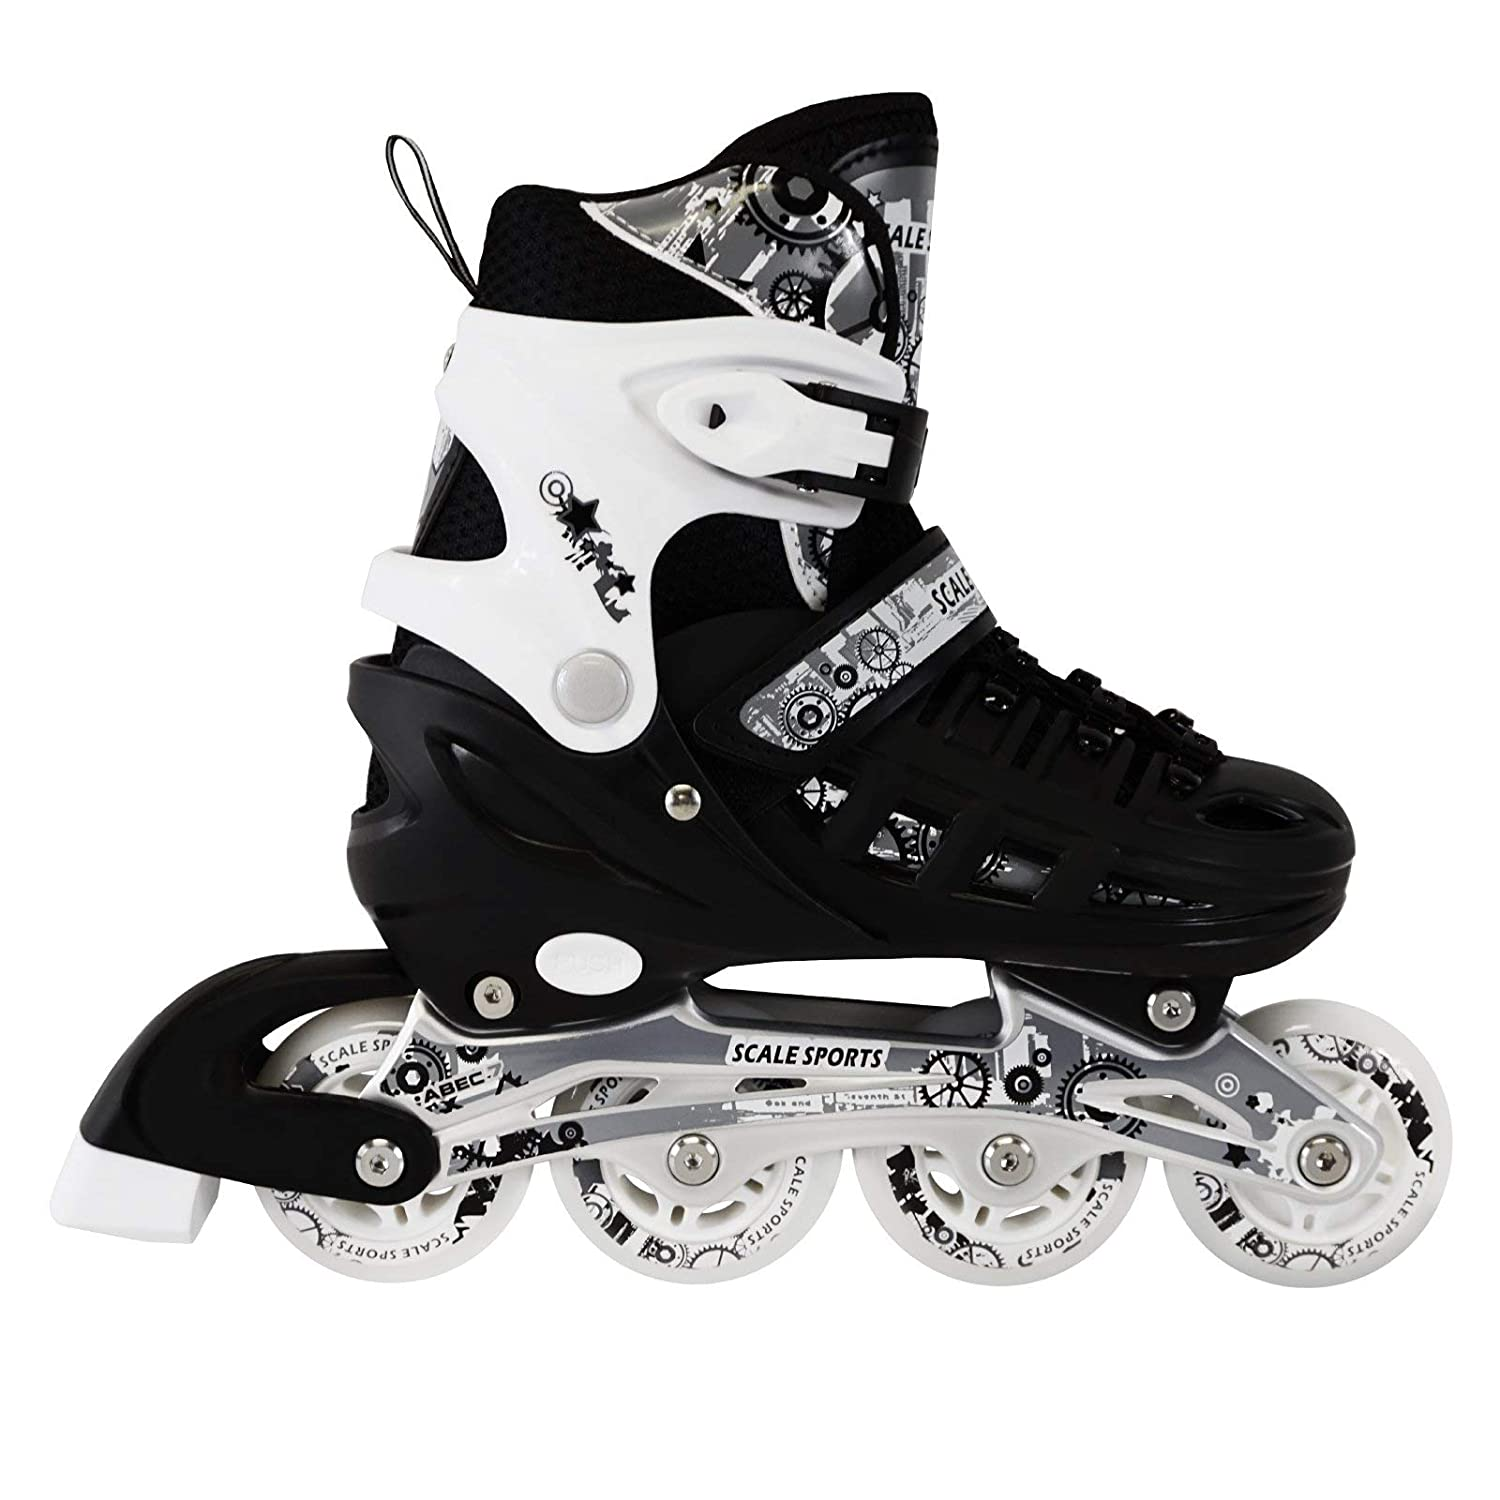 Renewed Scale Sports Kids Adjustable Inline Roller Blade Skates Small Medium Large Sizes Safe Durable Outdoor Featuring Illuminating Front Wheels 905